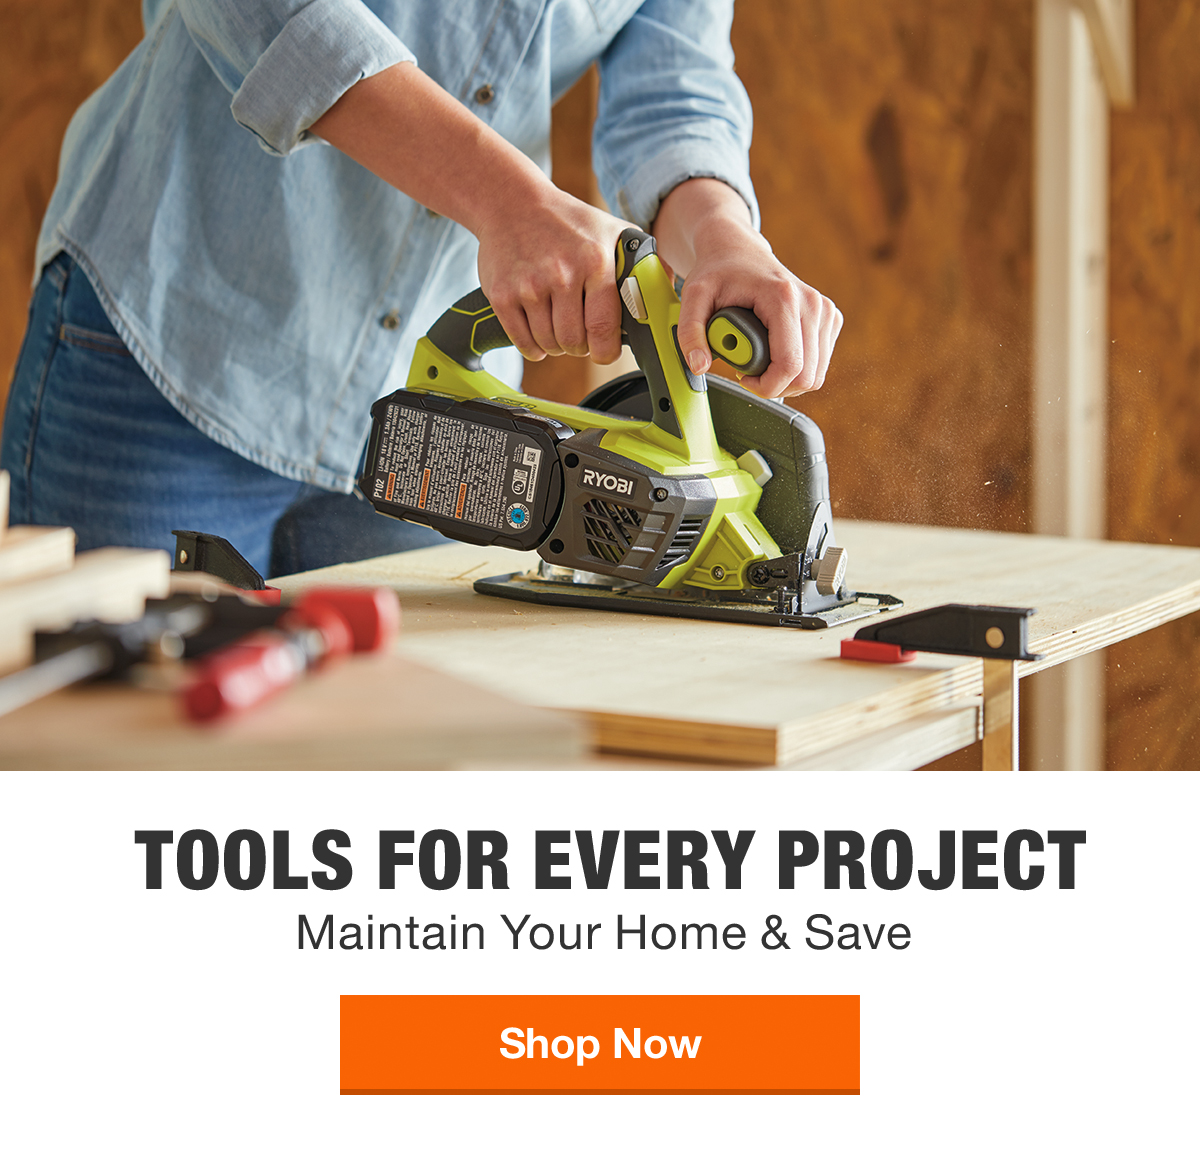 TOOLS FOR EVERY PROJECT